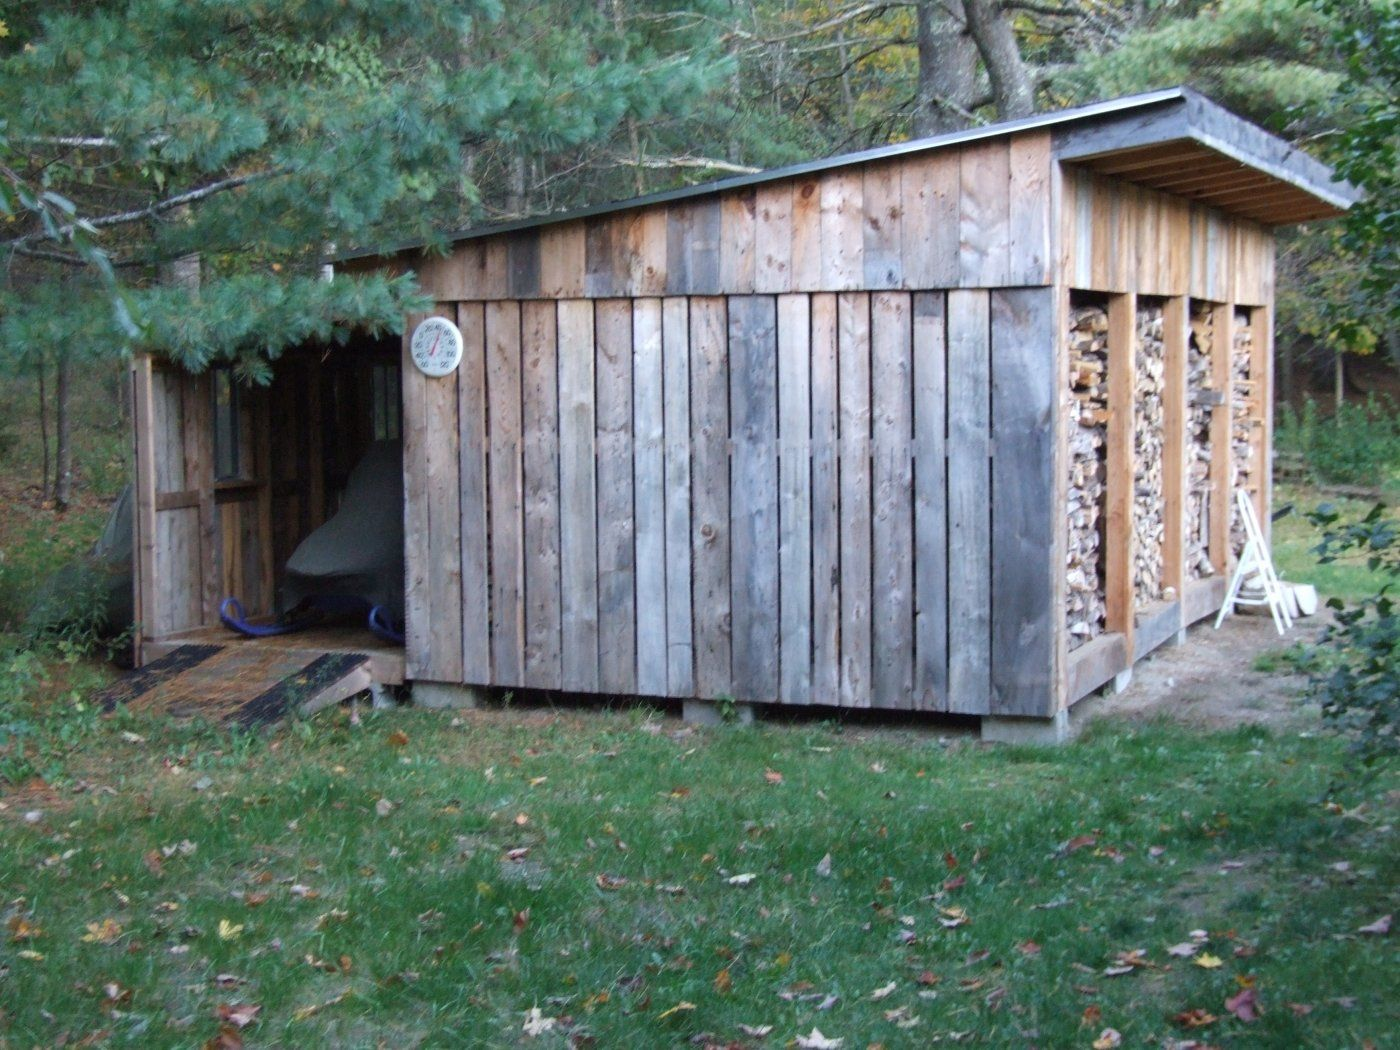 Wood shed pressure treated or not | Hearth com Forums Home